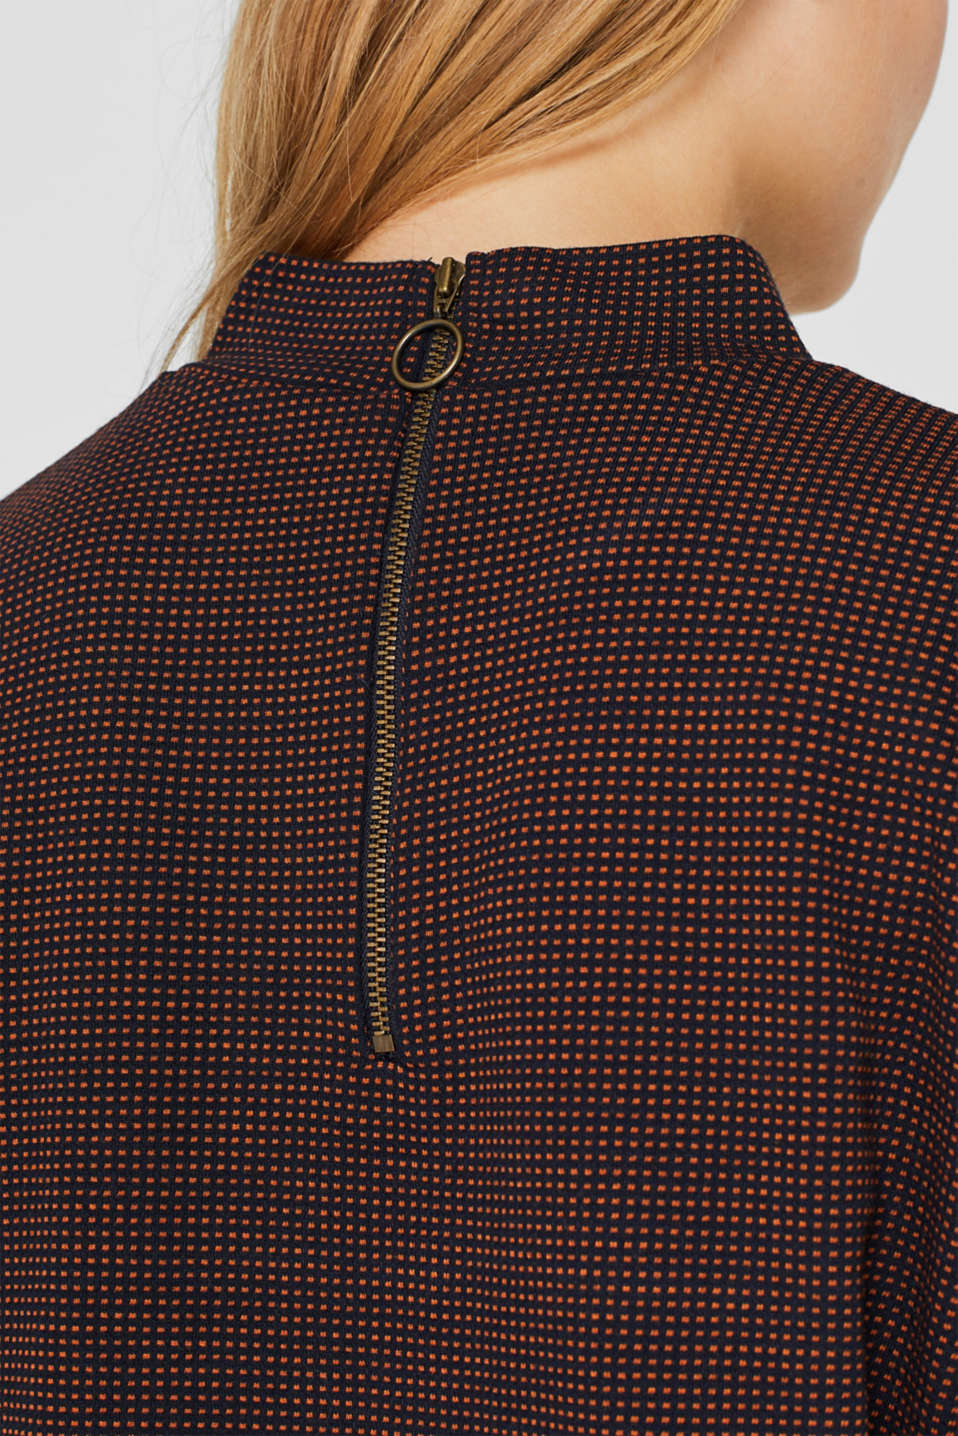 Long sleeve jacquard top with stand-up collar, NAVY, detail image number 2